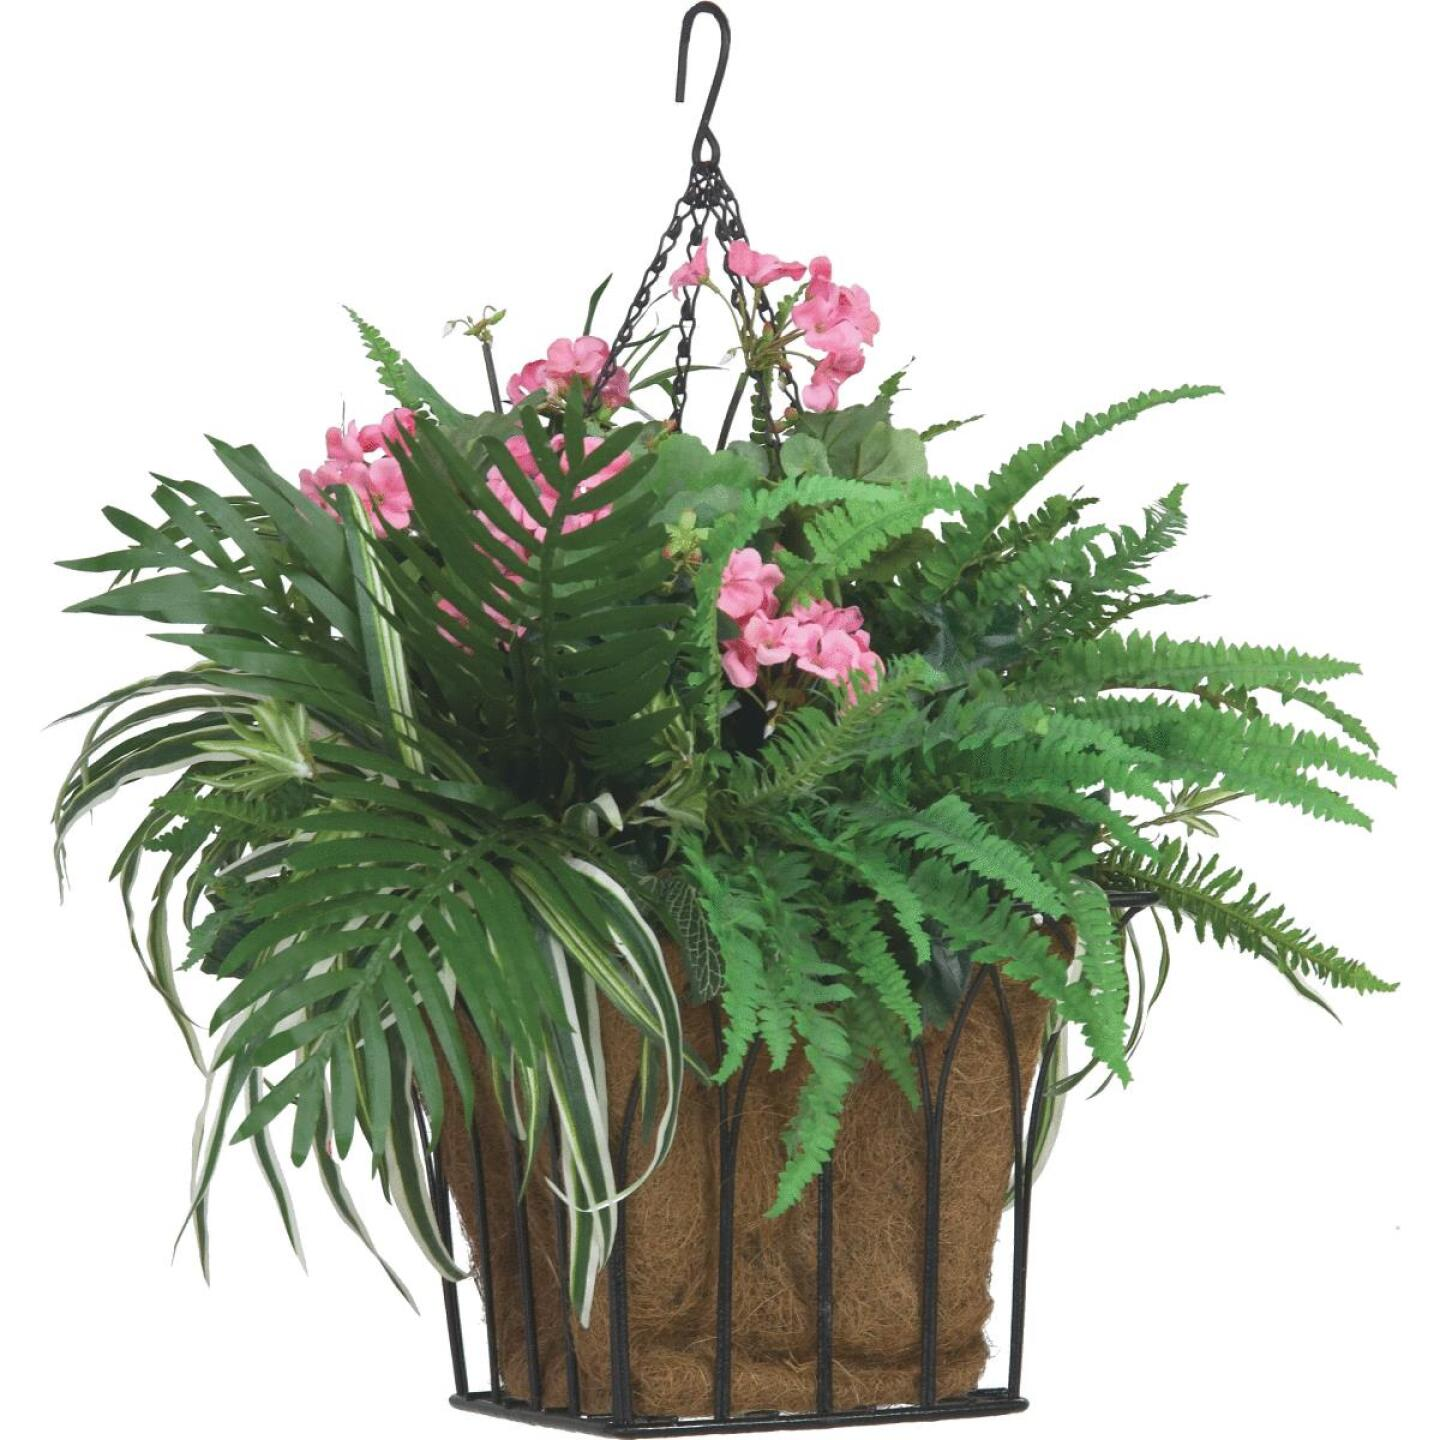 Best Garden 14 In. Steel Rod Black Hanging Plant Basket Image 2